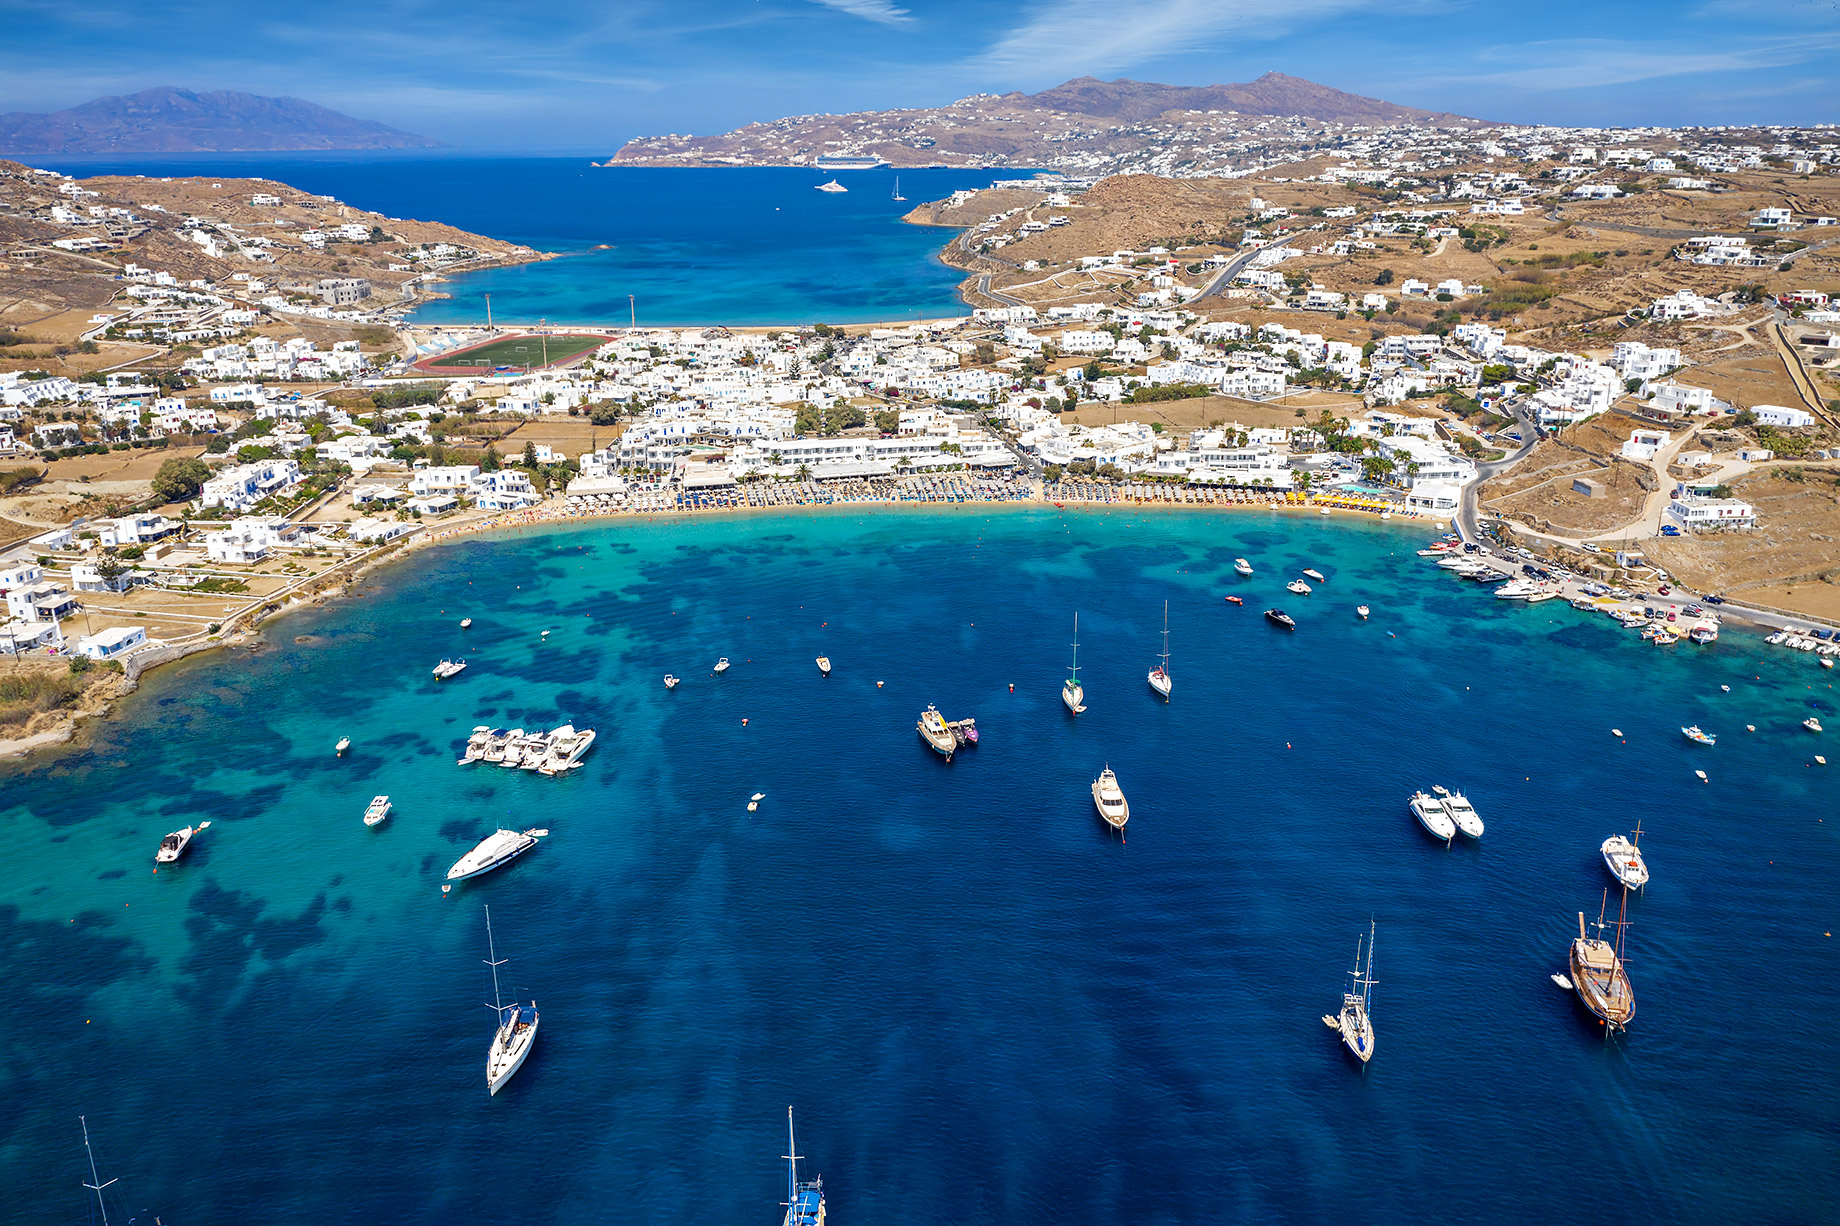 Ornos - Where To Stay In Mykonos, Greece For The First Time